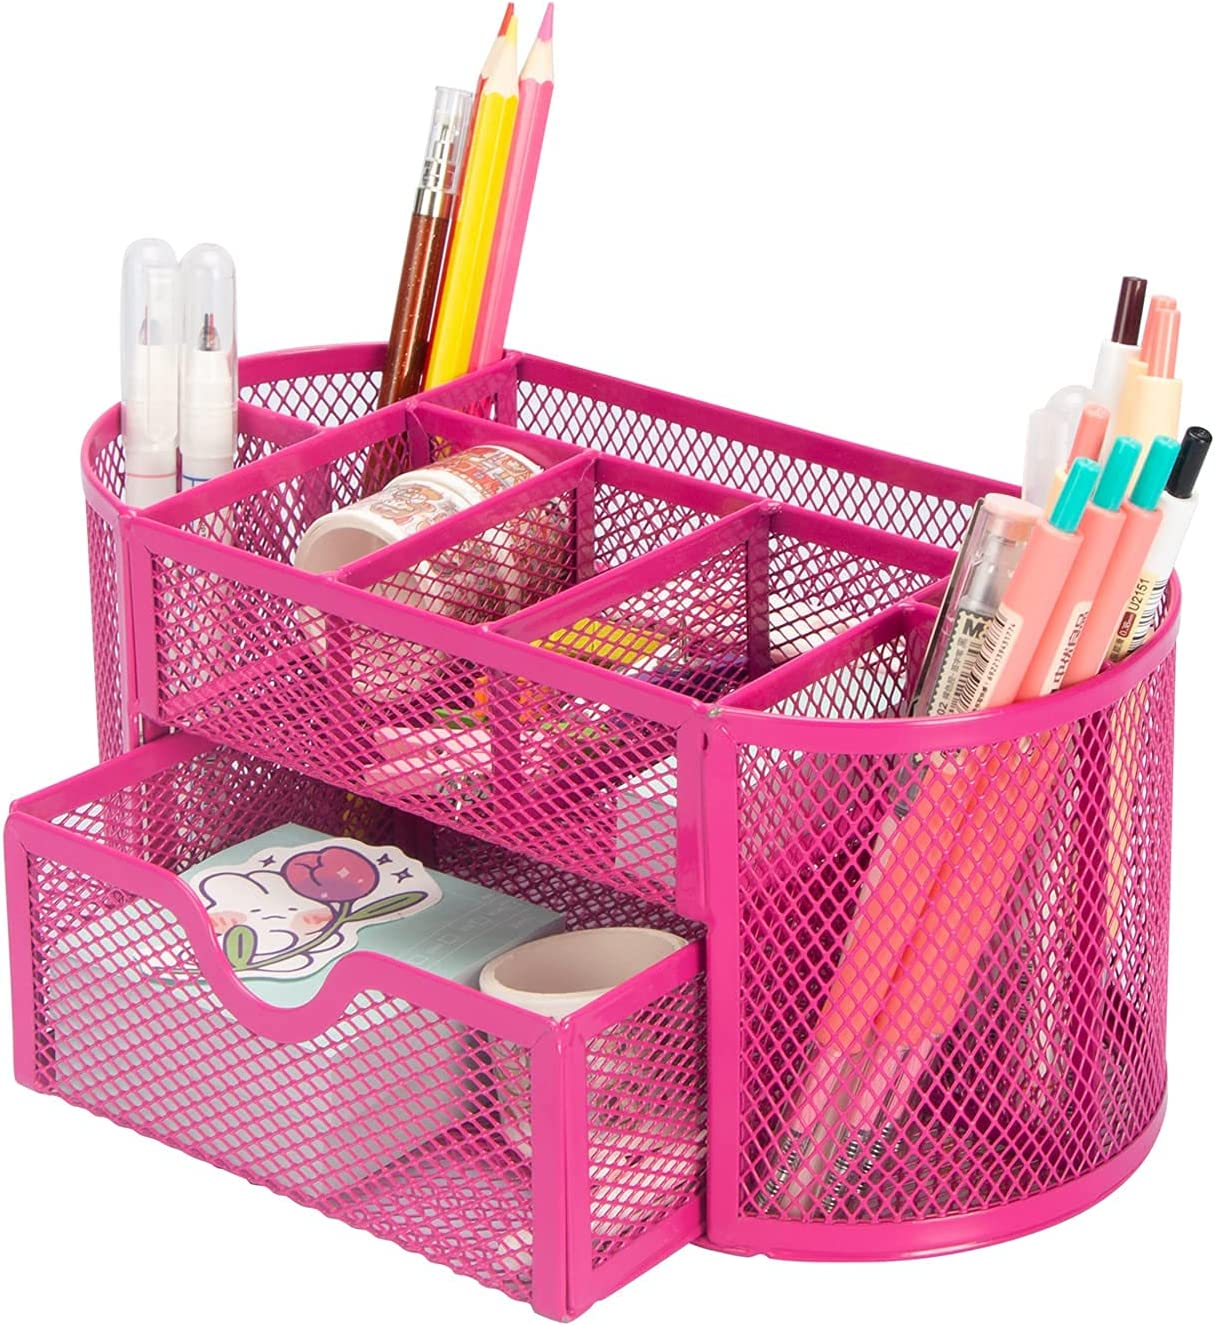 Aobopar Mesh Desk Ranking TOP17 Organizer with 9 Office Max 58% OFF Desktop Compartments